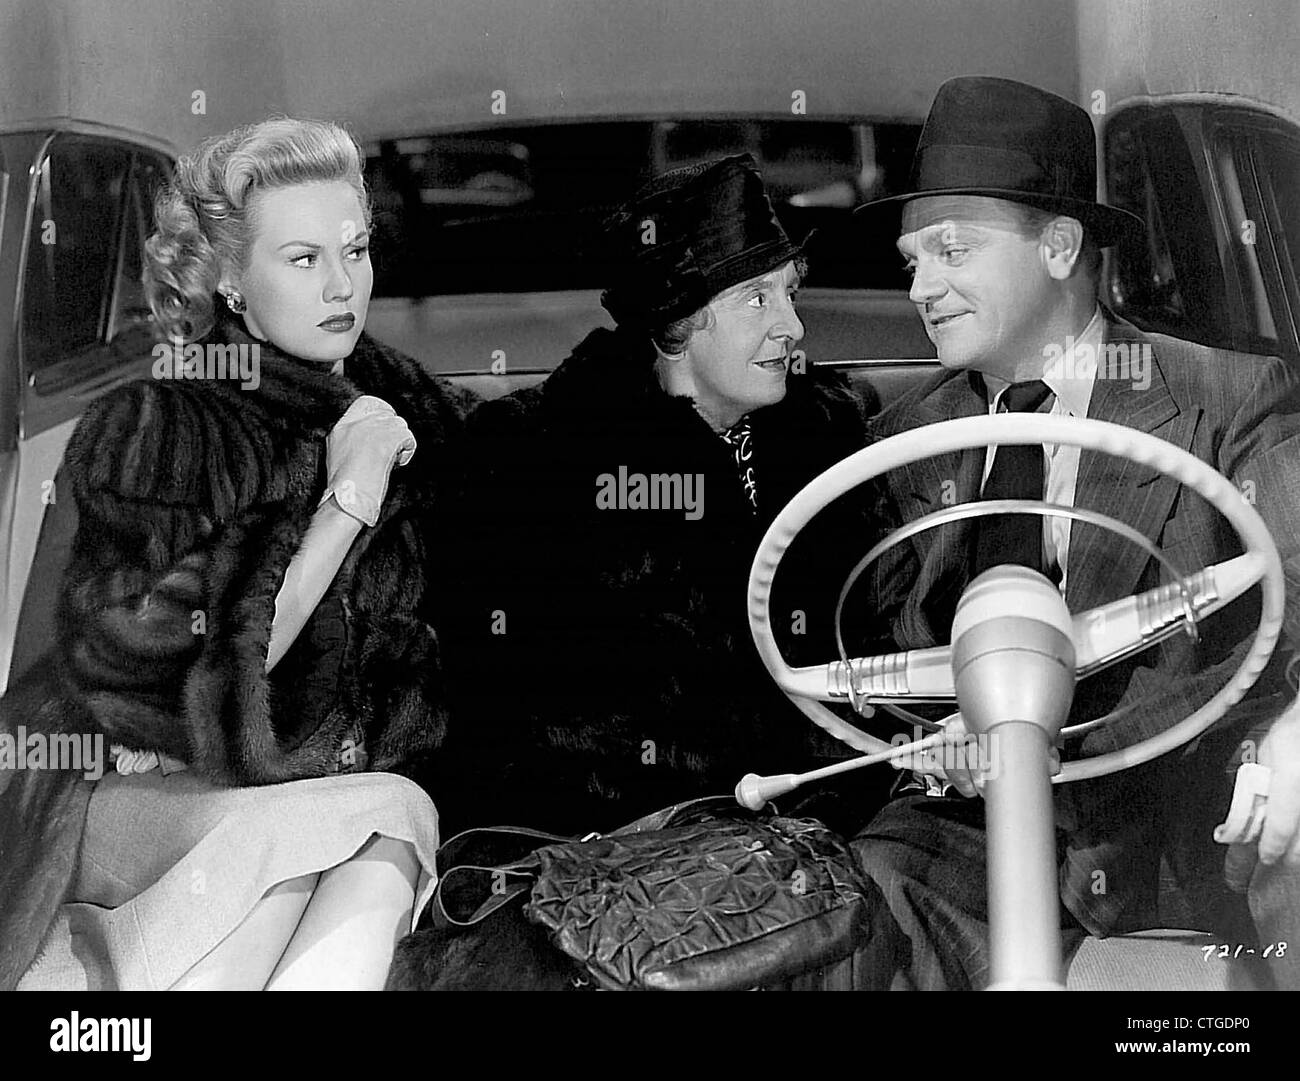 WHITE HEAT (1949) VIRGINIA MAYO, MARGARET WYCHERLY, JAMES CAGNEY, RAOUL WALSH (DIR) 011 MOVIESTORE COLLECTION LTD - Stock Image